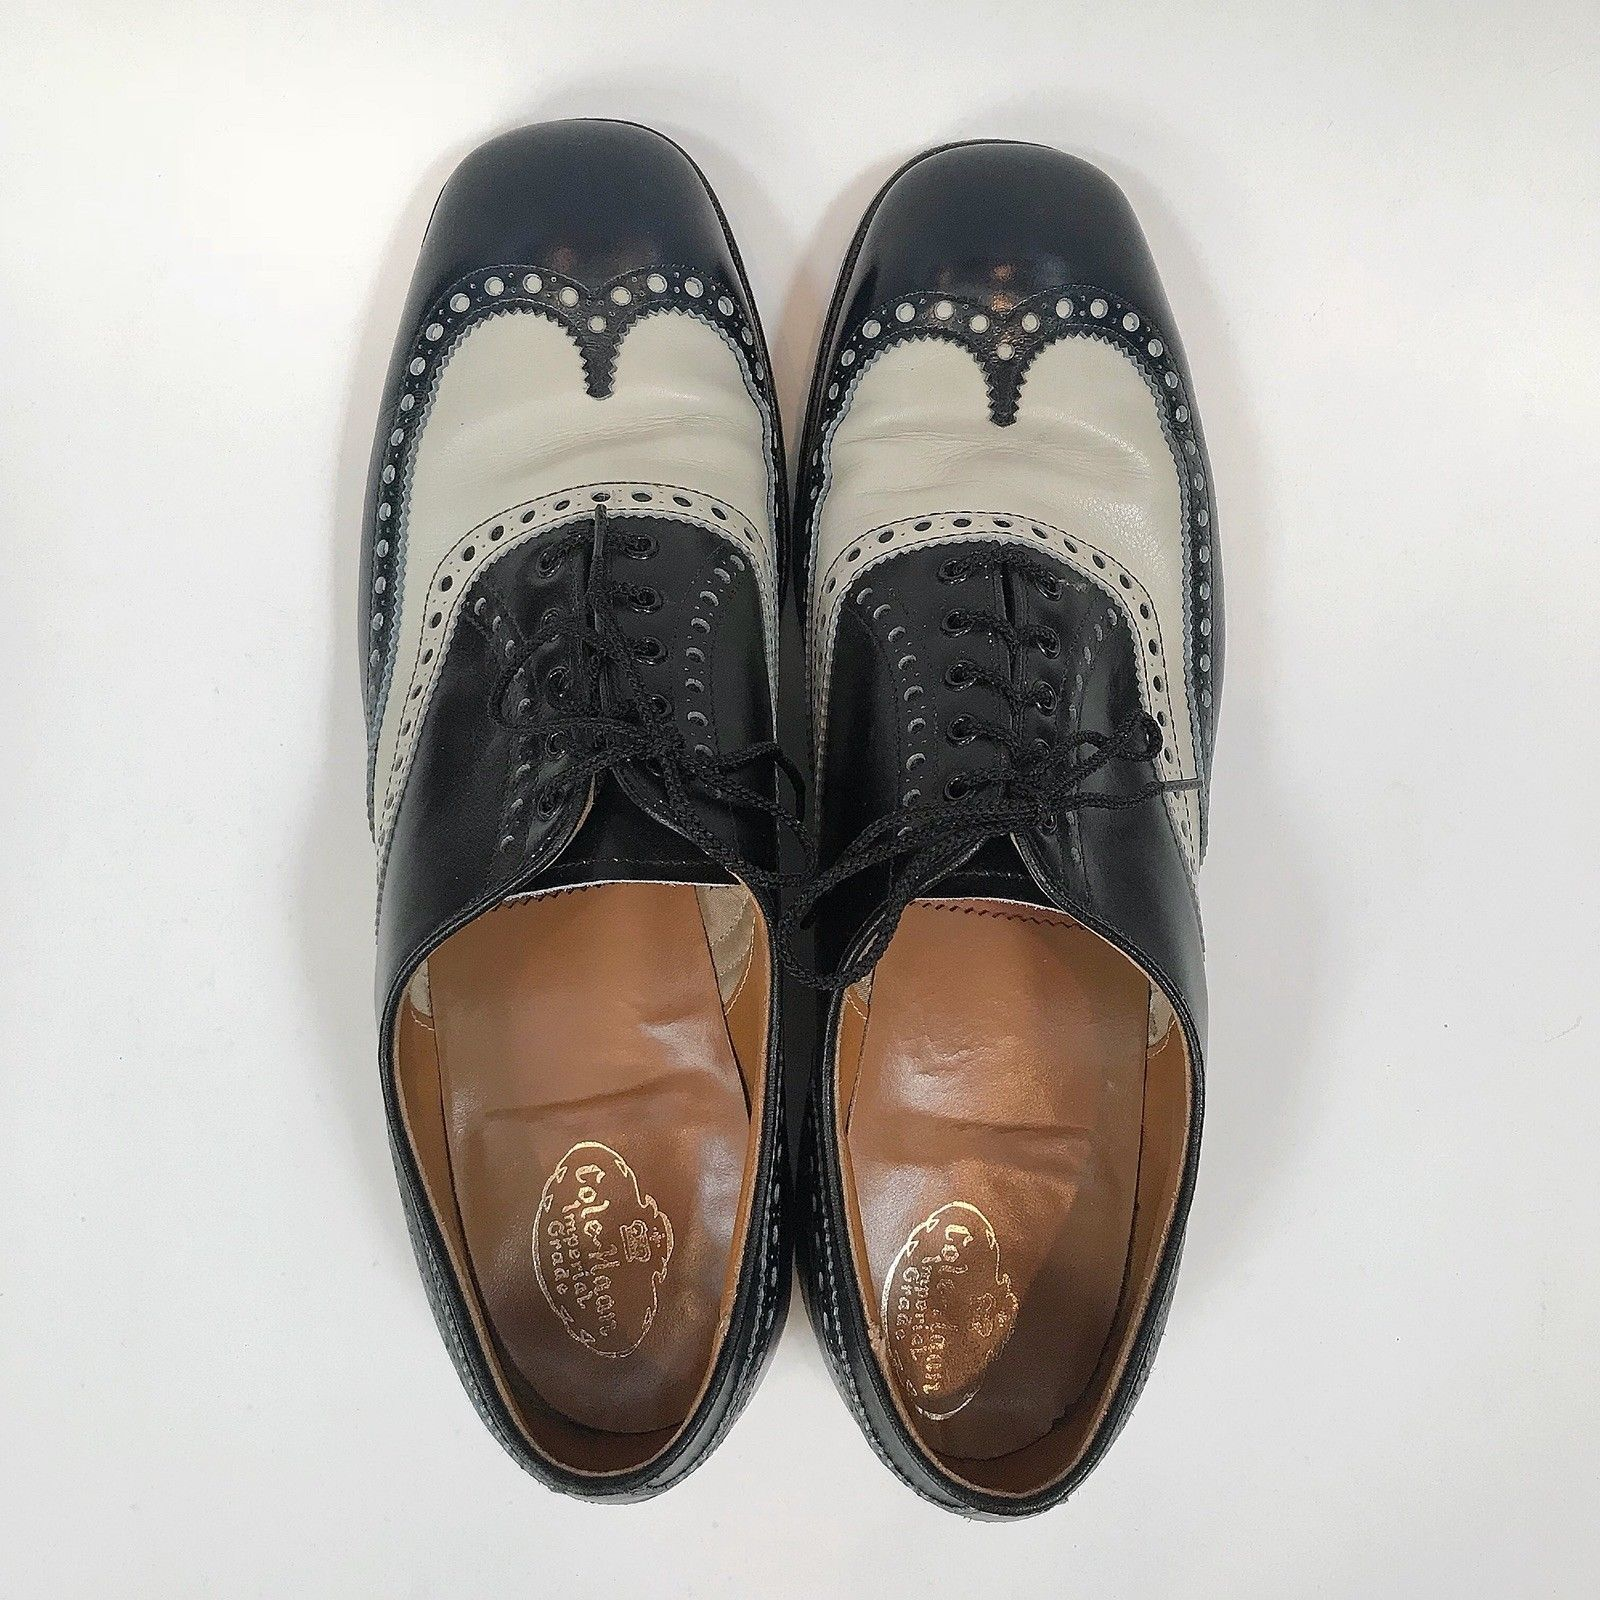 Men's Vtg Cole Haan Oxford Wingtip Gatsby Dress Shoes & Box Size 11 1970s